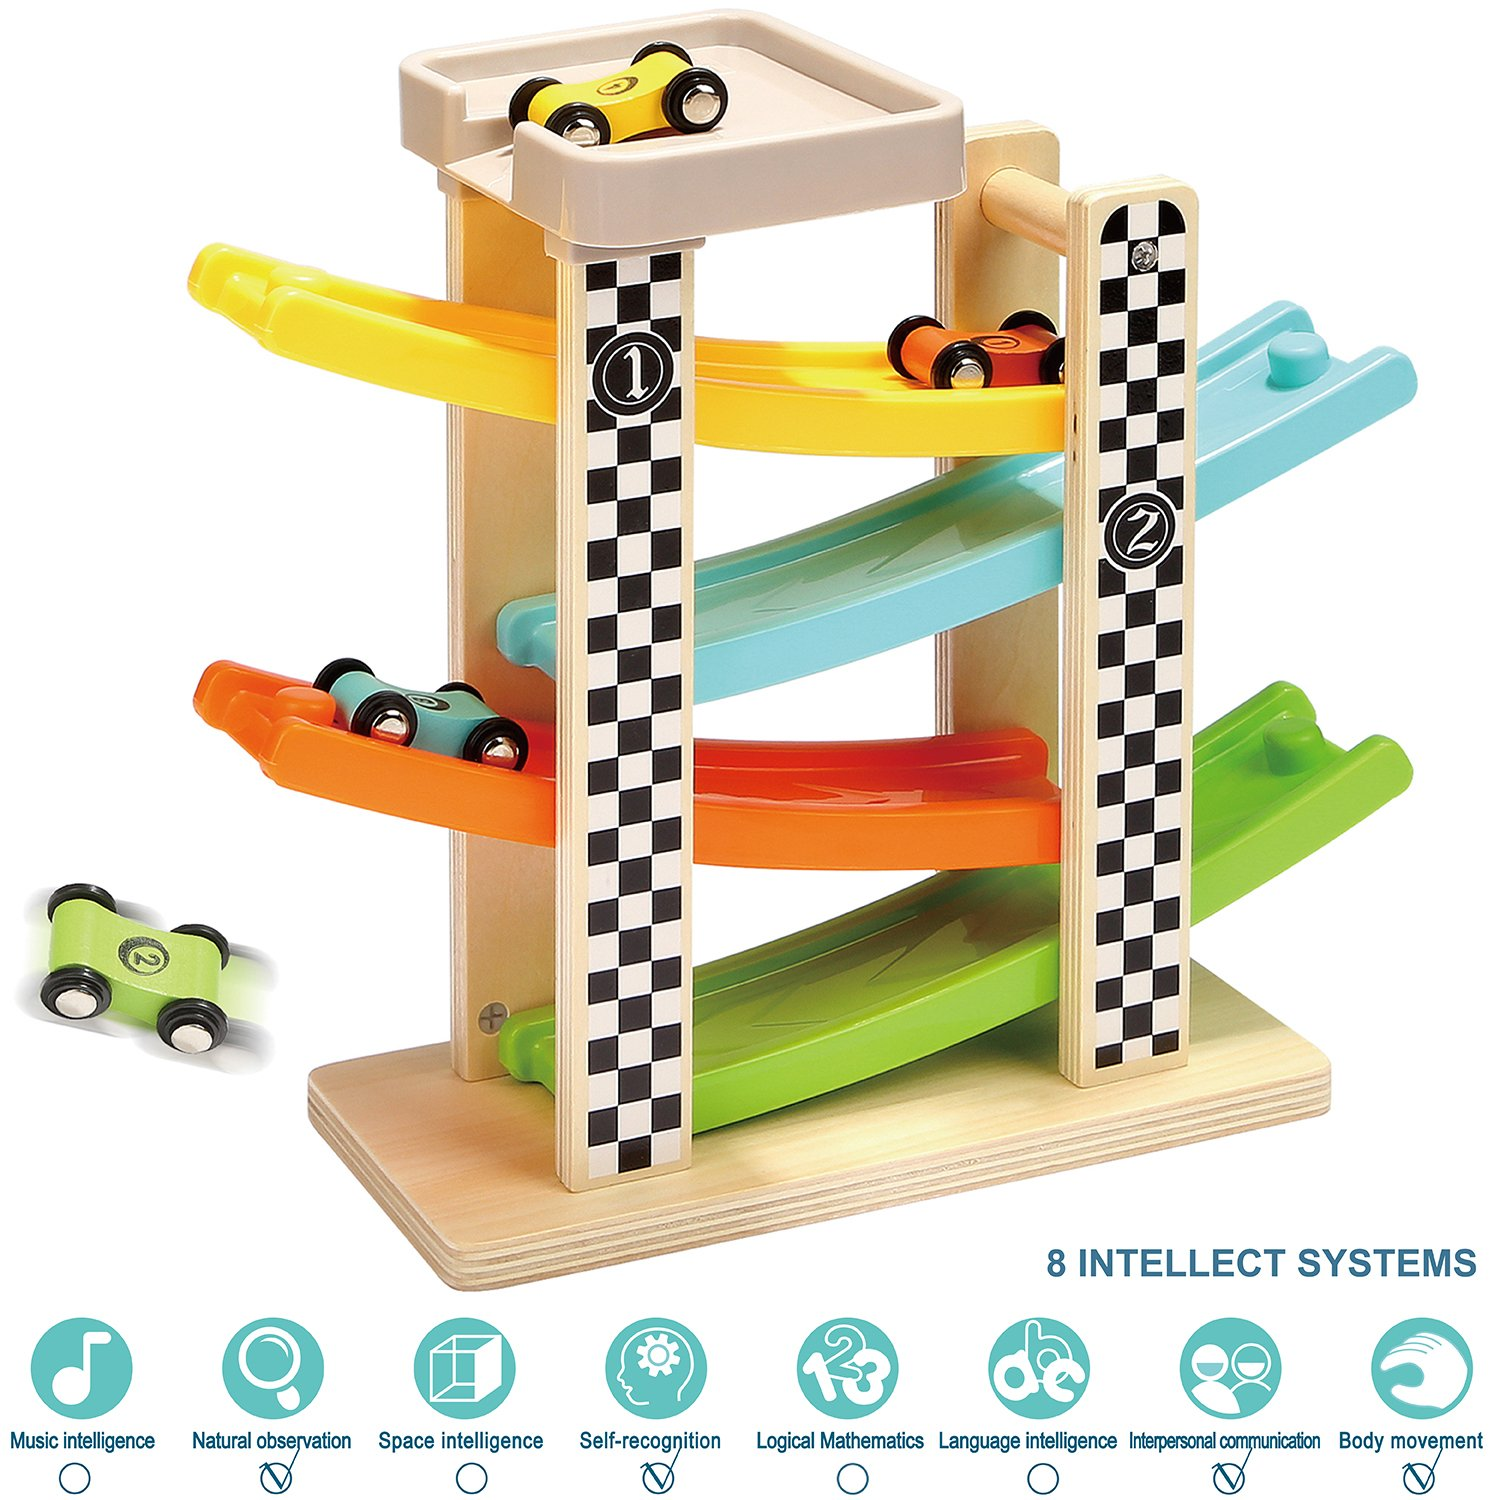 TOP BRIGHT Toddler Toys For 1 2 Year Old Boy And Girl Gifts Wooden Race Track Car Ramp Racer With 4 Mini Cars by TOP BRIGHT